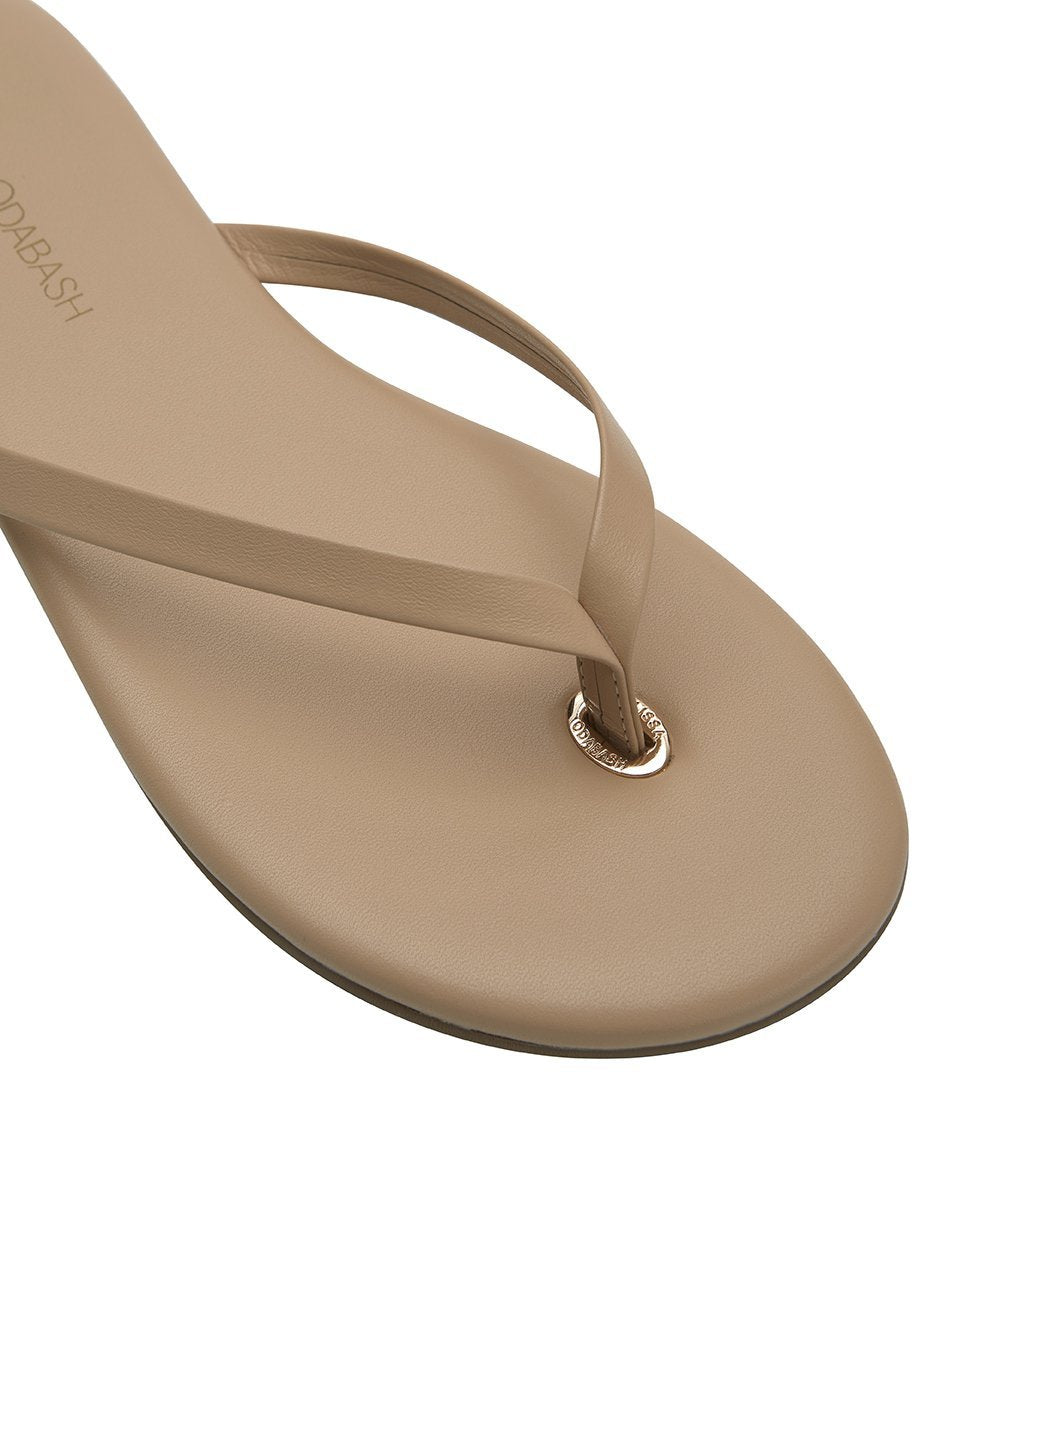 flip flop leather nude 2019 3